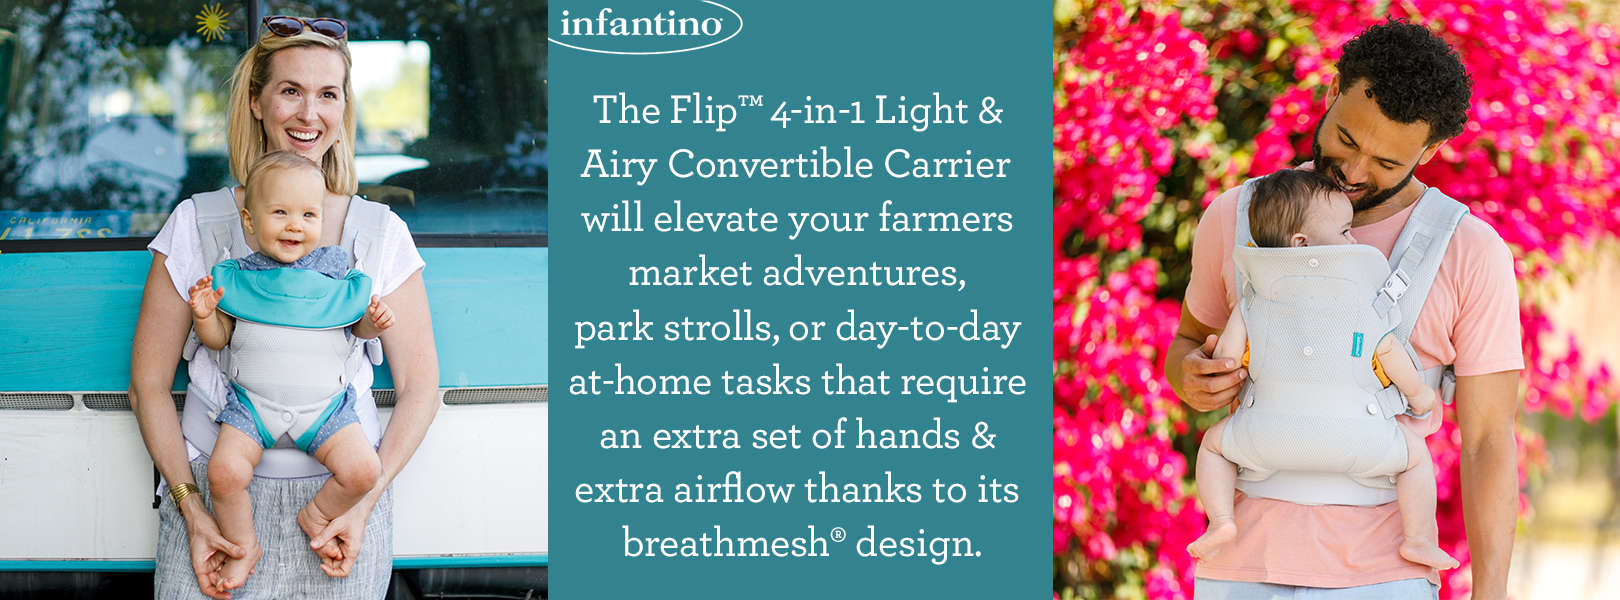 FREE Infantino Flip 4-in-1 Light & Airy Convertible Carrier